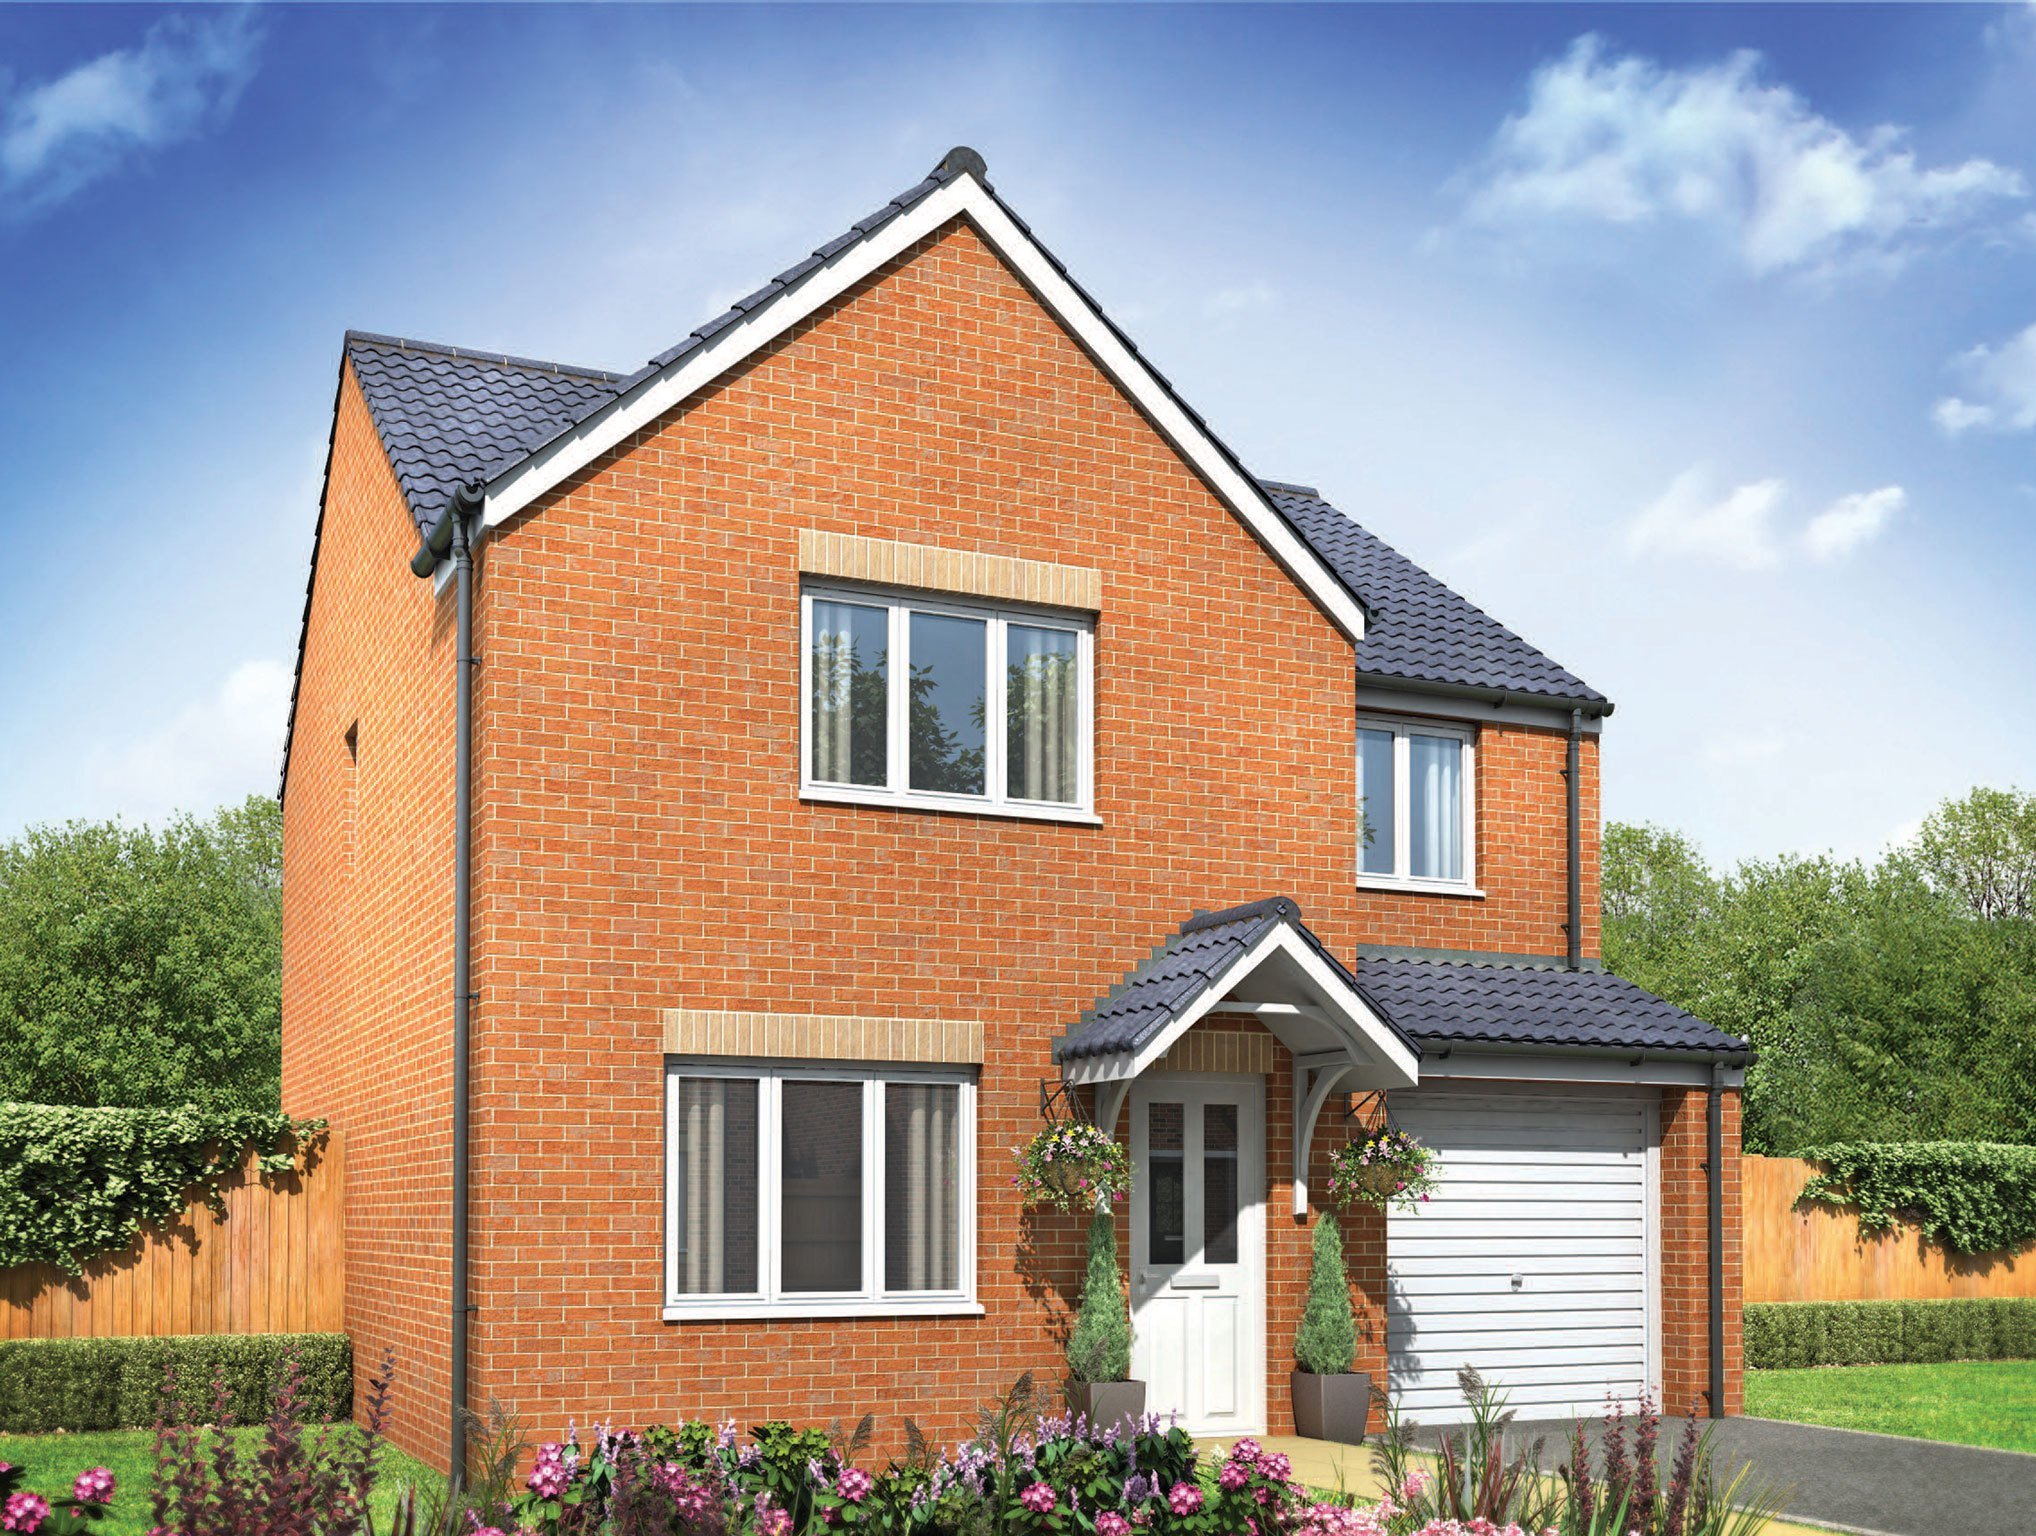 Best Homes For Sale In Coventry West Midlands Cv2 2Ab With Pictures